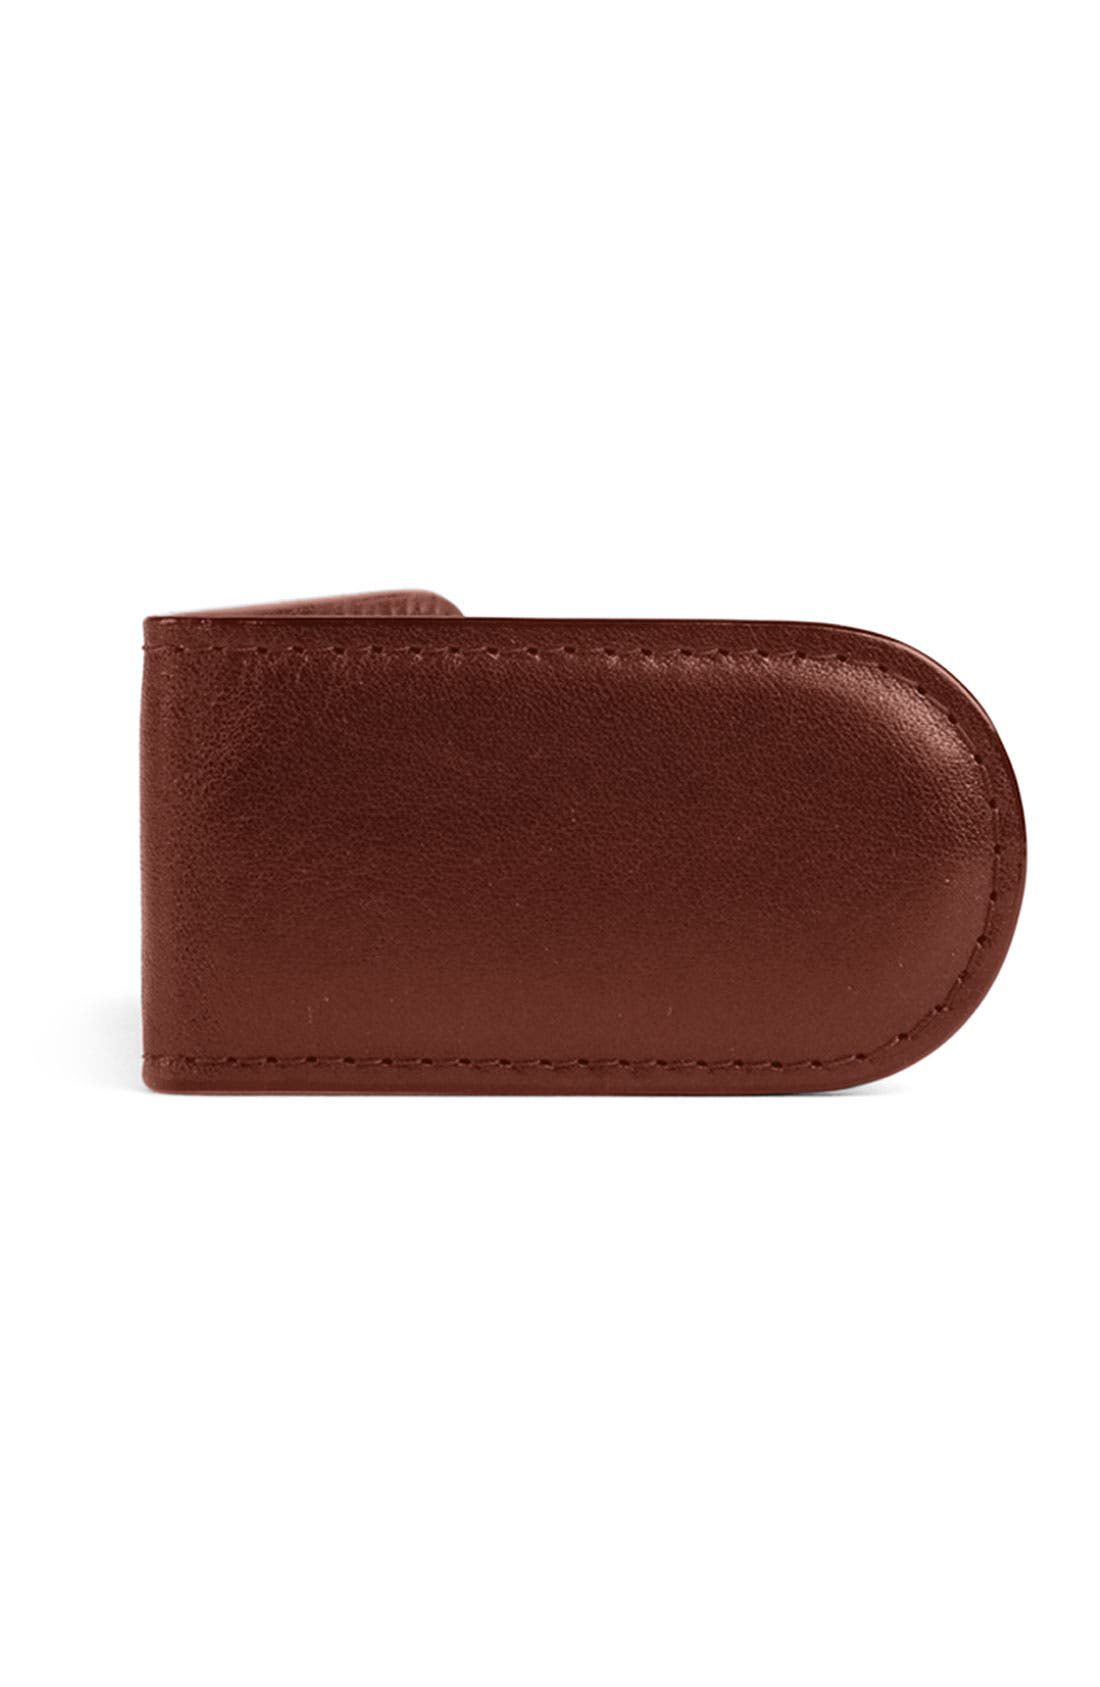 Alternate Image 1 Selected - Bosca Leather Money Clip